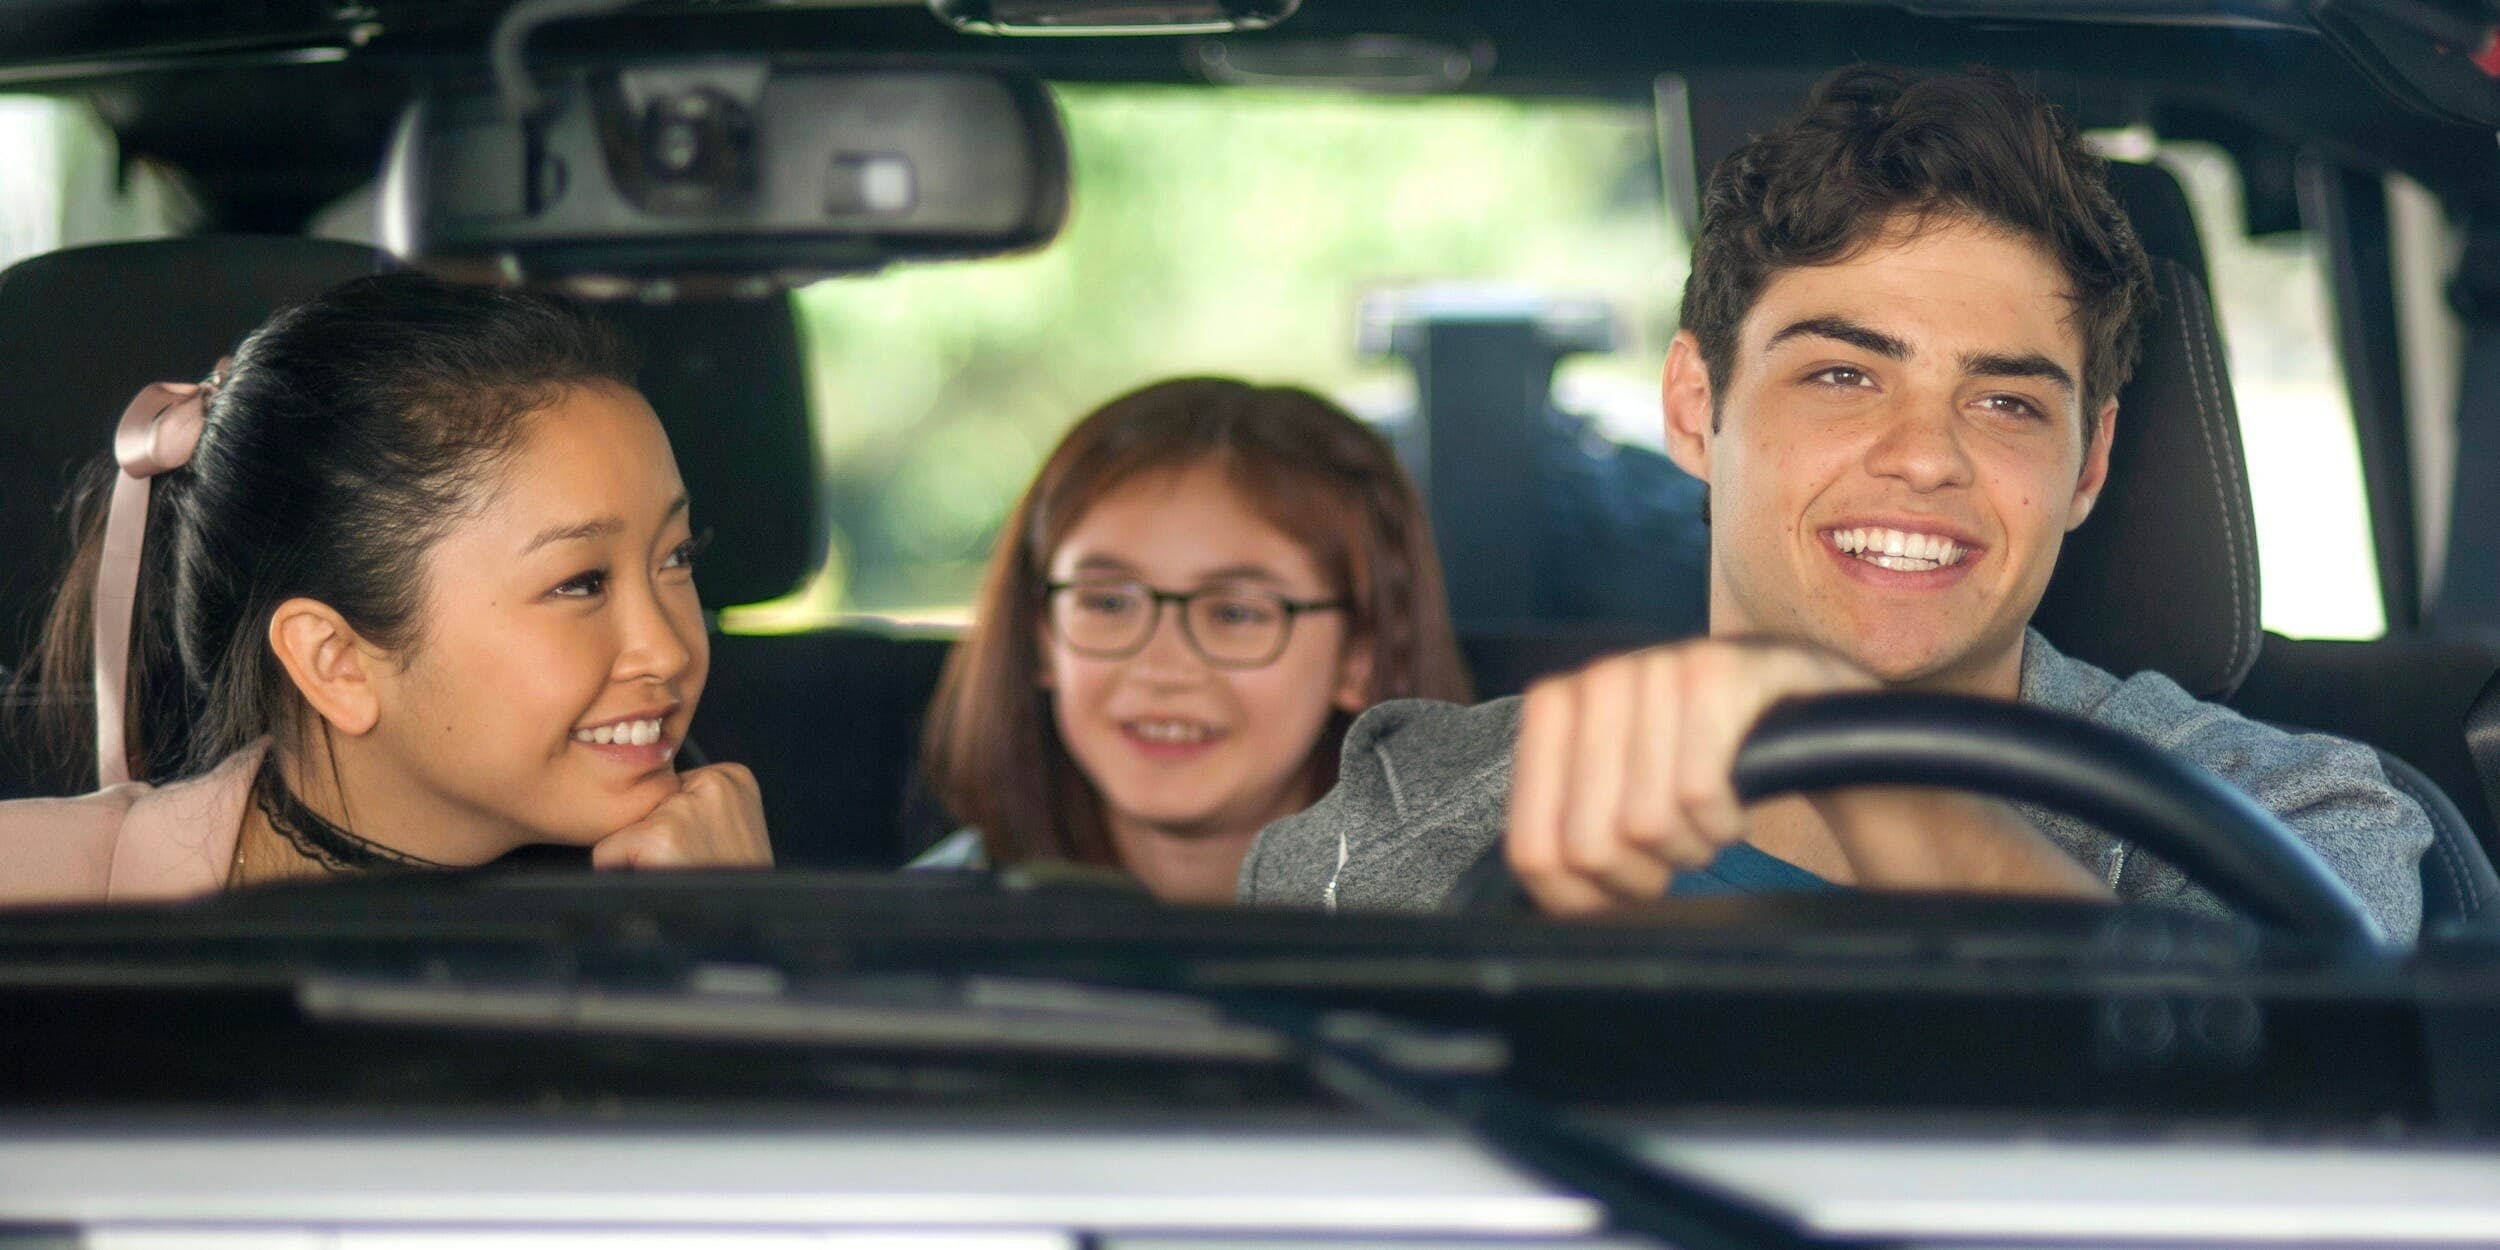 best rom-coms on Netflix - to all the boys I've loved before